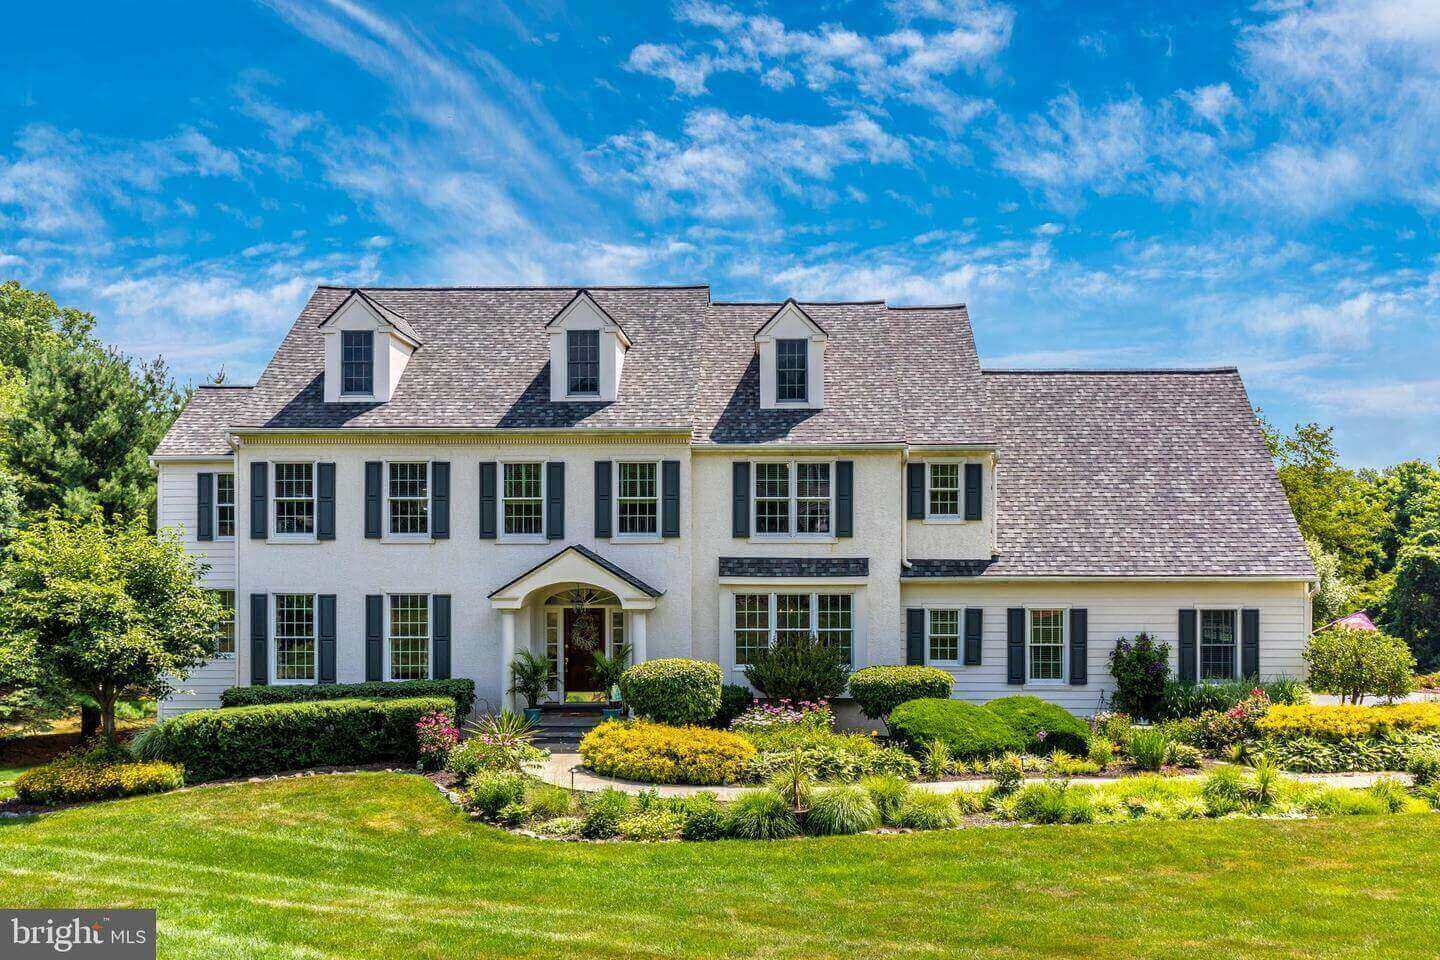 Malvern Bank House of the Week: Desirable 5-Bedroom Summerhill Colonial in Edgmont